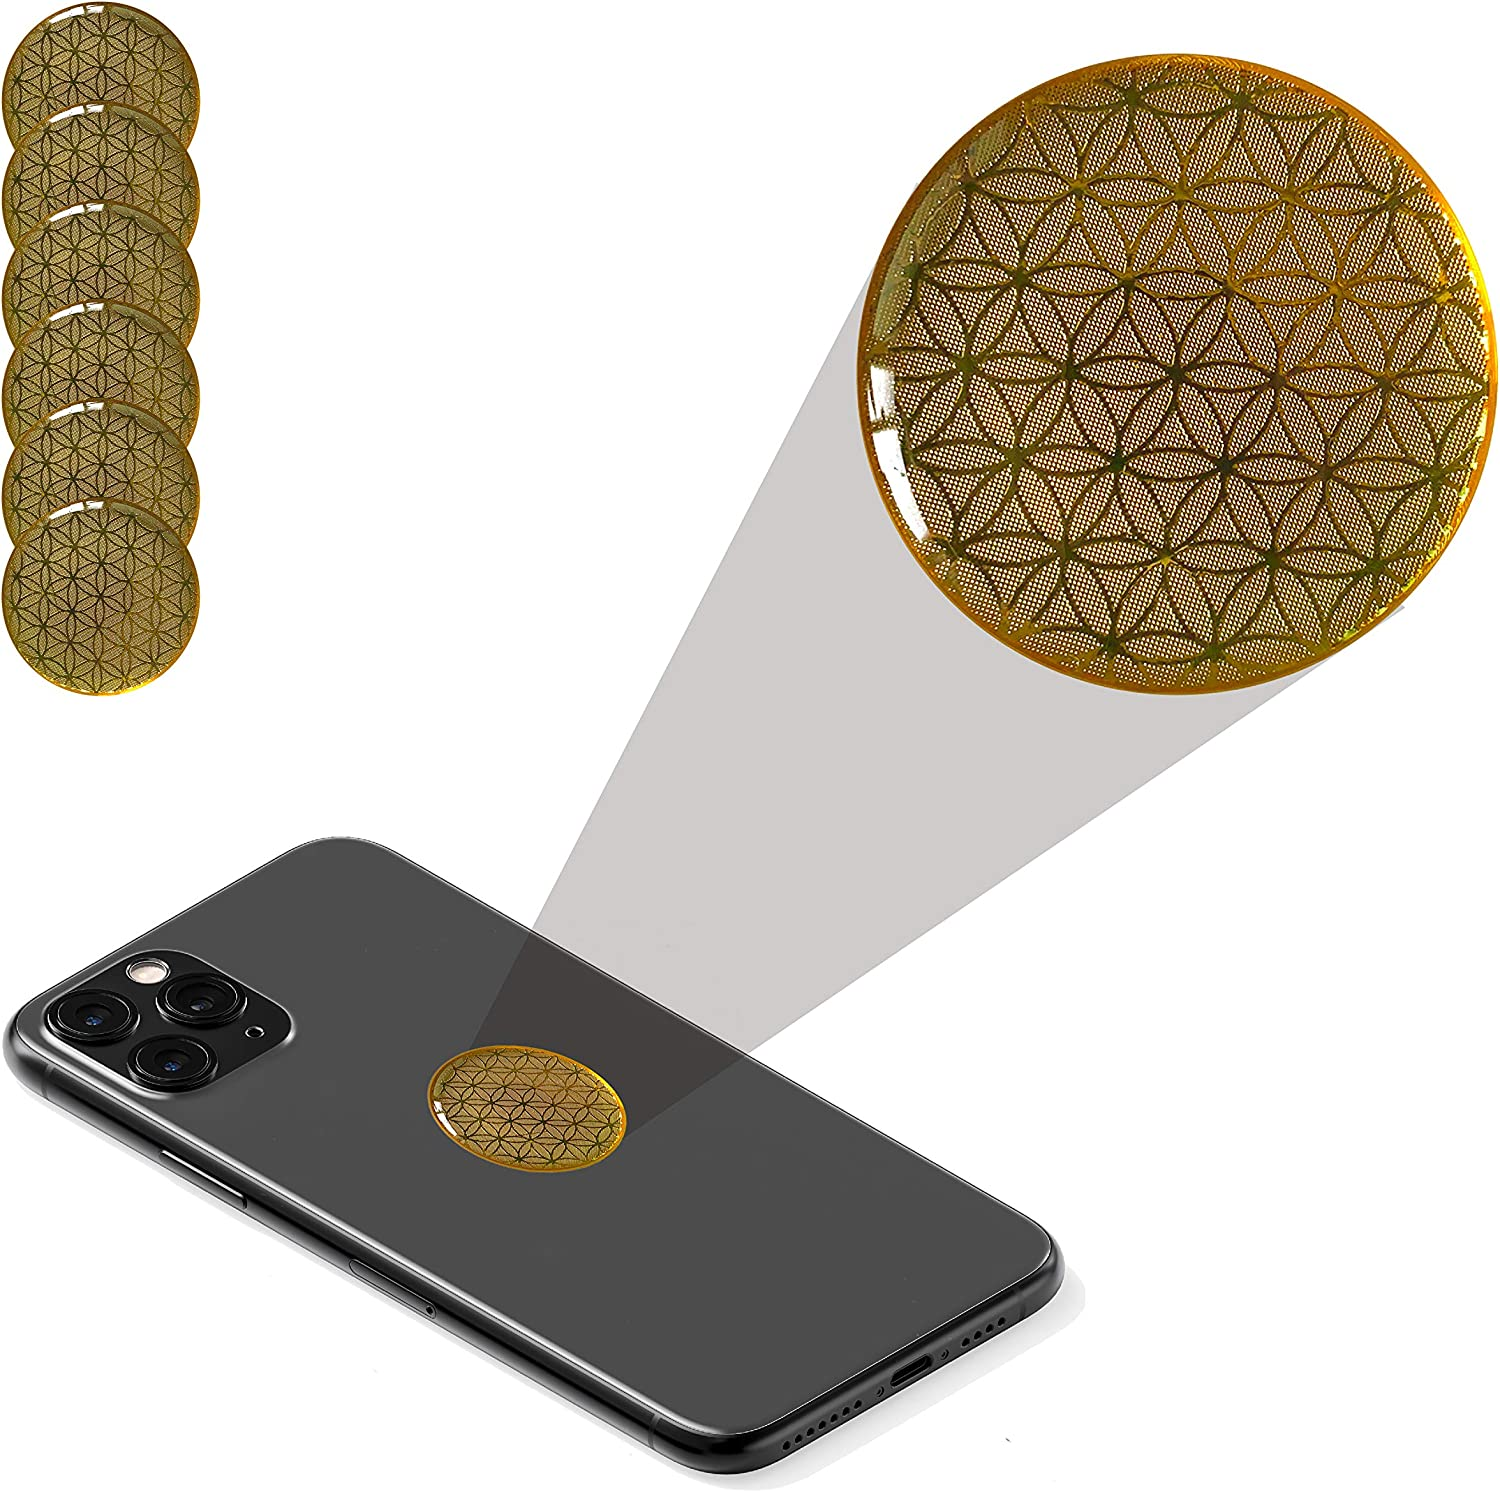 EMF Protector Sticker Anti Radiation 6 Pack for Cell Phone and Laptop with Flower of Life Symbol. Electro Magnetic Field Blocker for Smartphone.